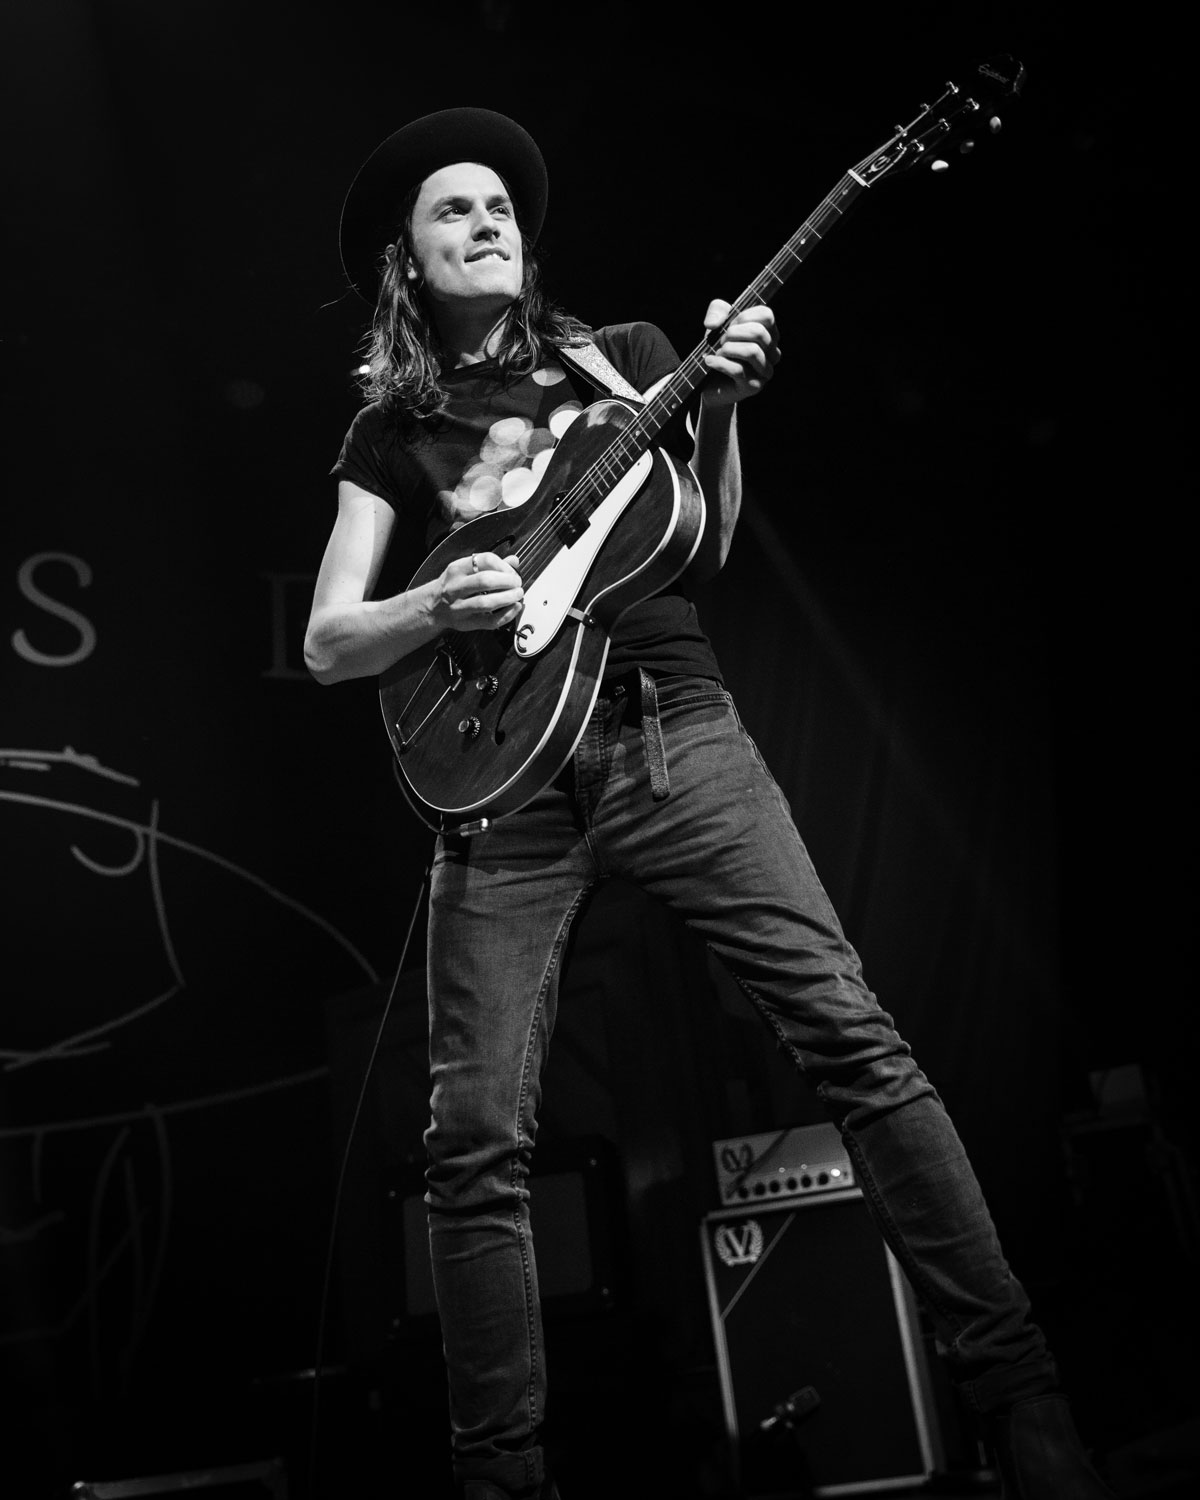 James Bay shreds for Philly at the Fillmore on Nov. 13 - Magda Papaioannou